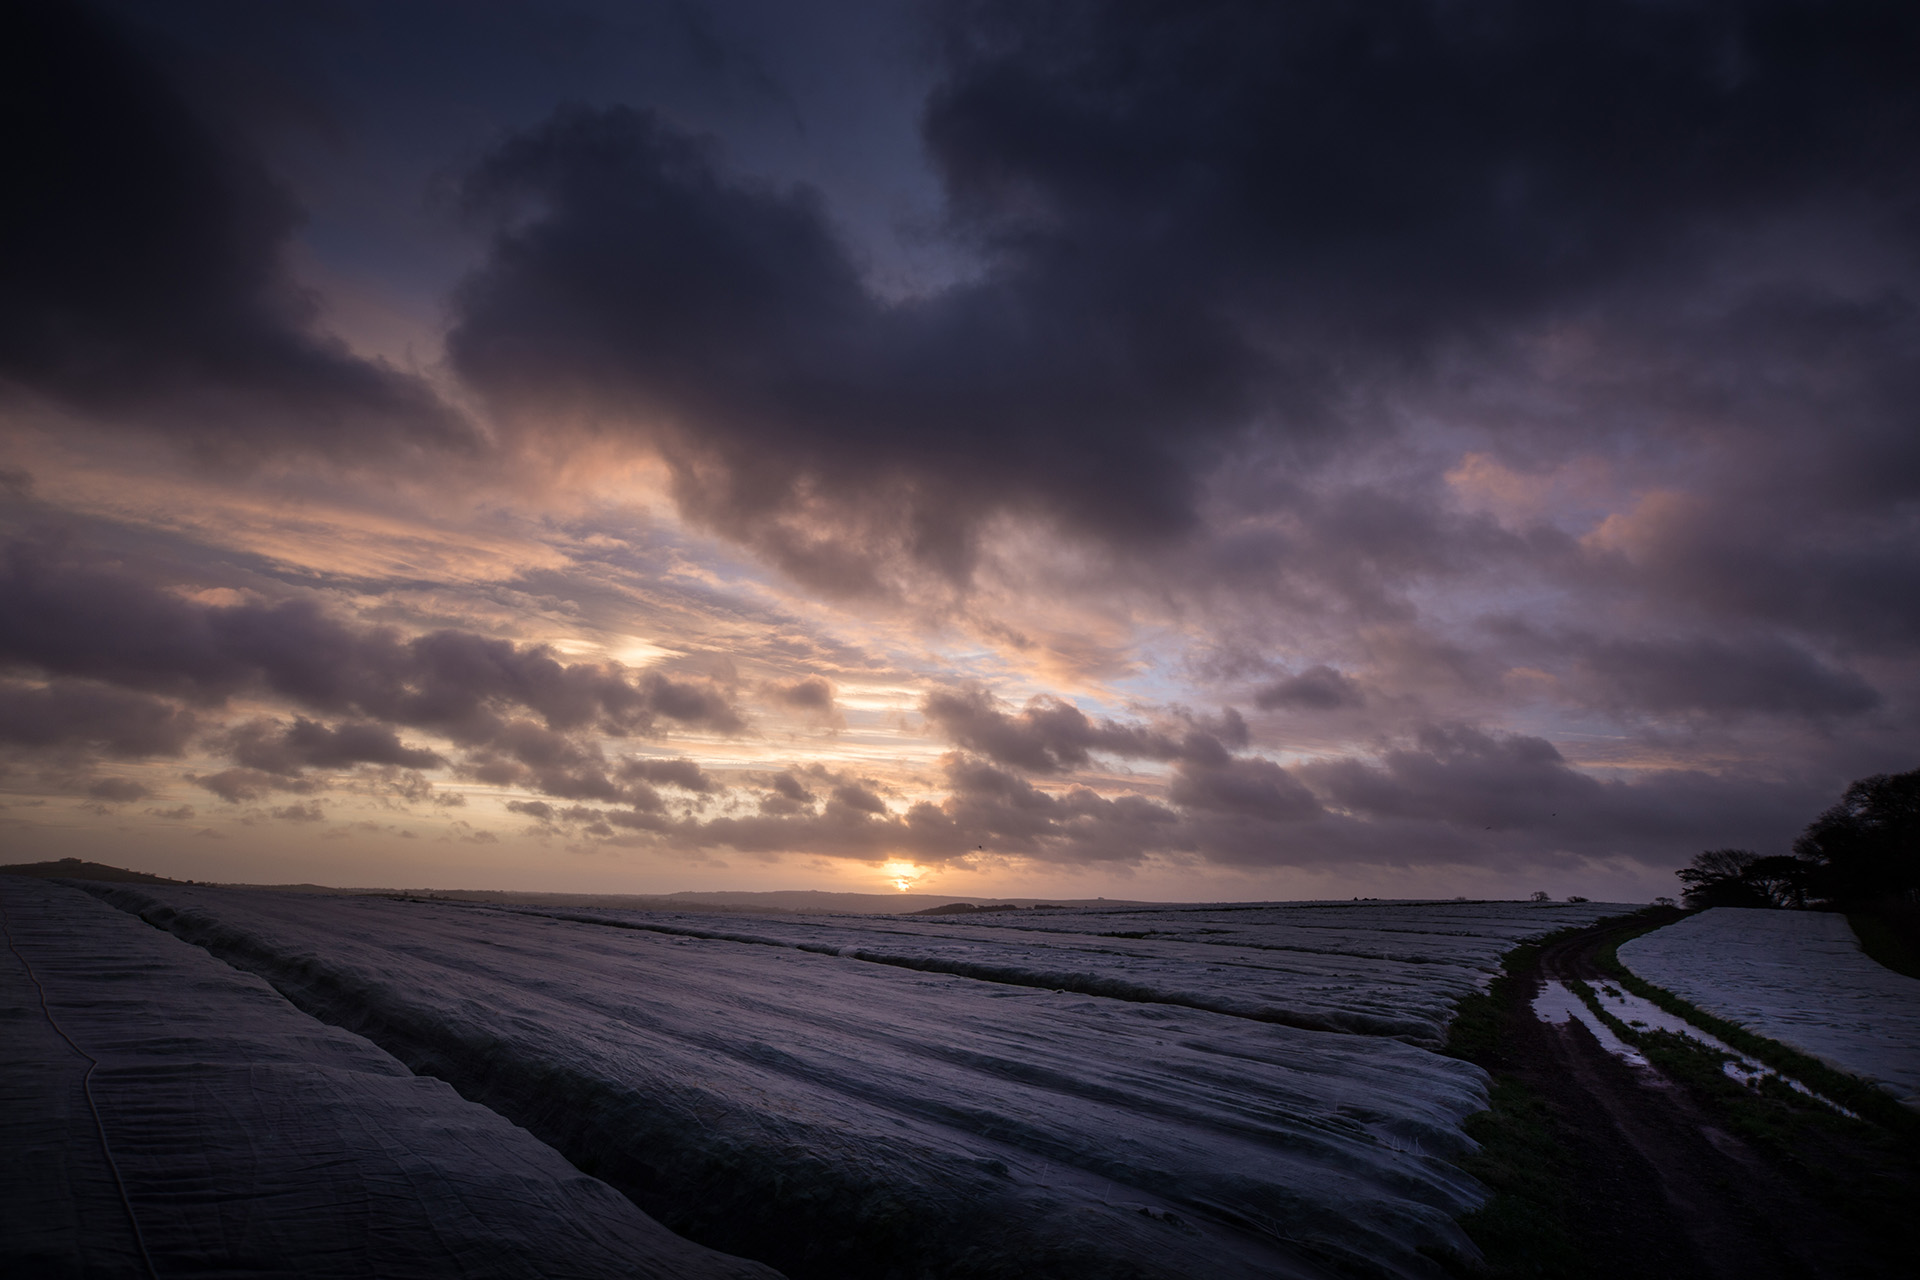 Agricultural fleece is used to protect crops from winter frost. But here is appearance looks more like waves on the sea, with brooding dark clouds behind.